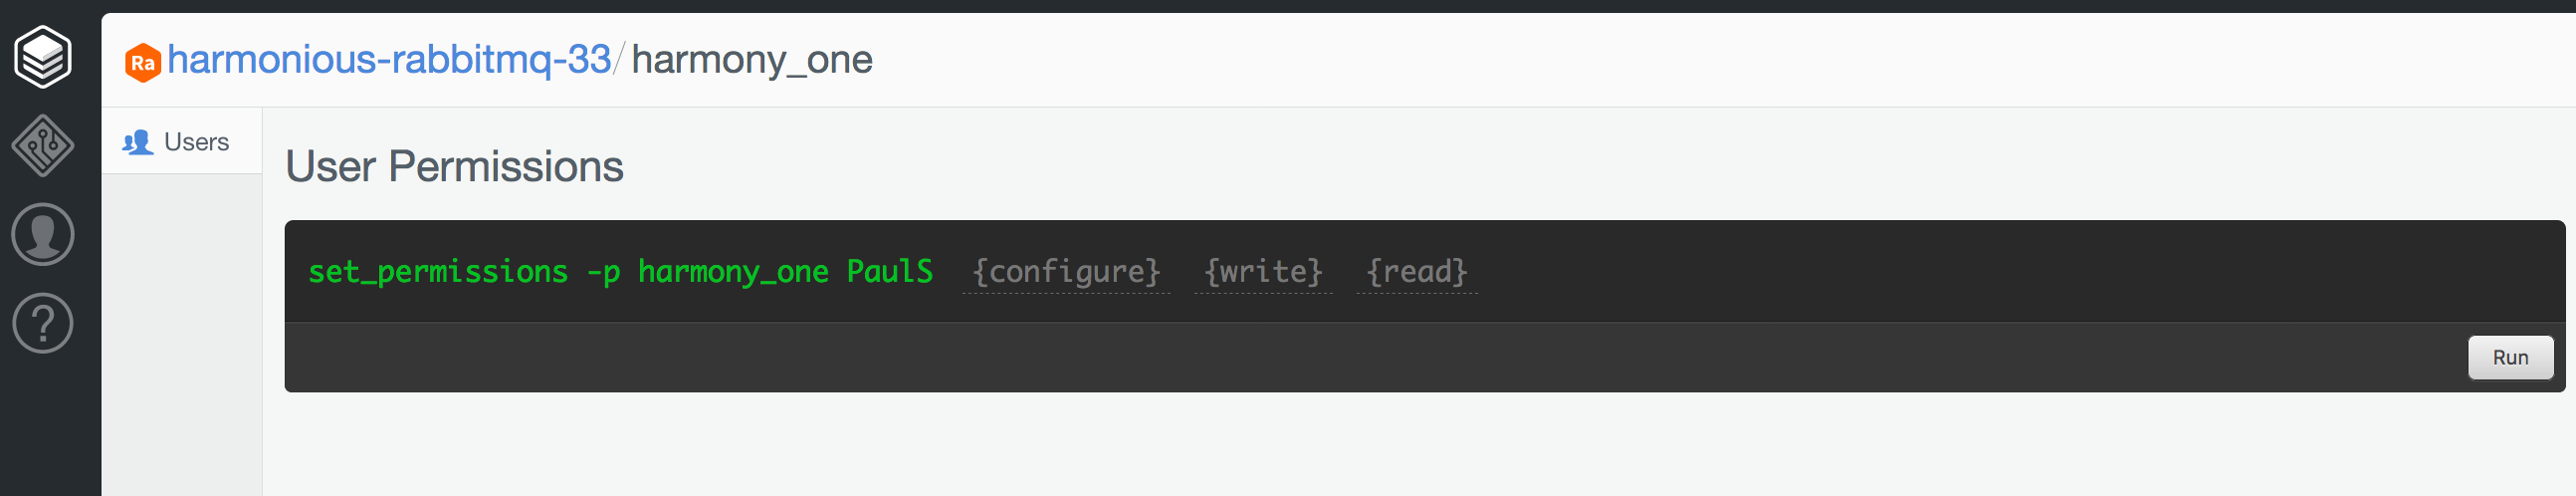 Running `set_permissions` in the browser.